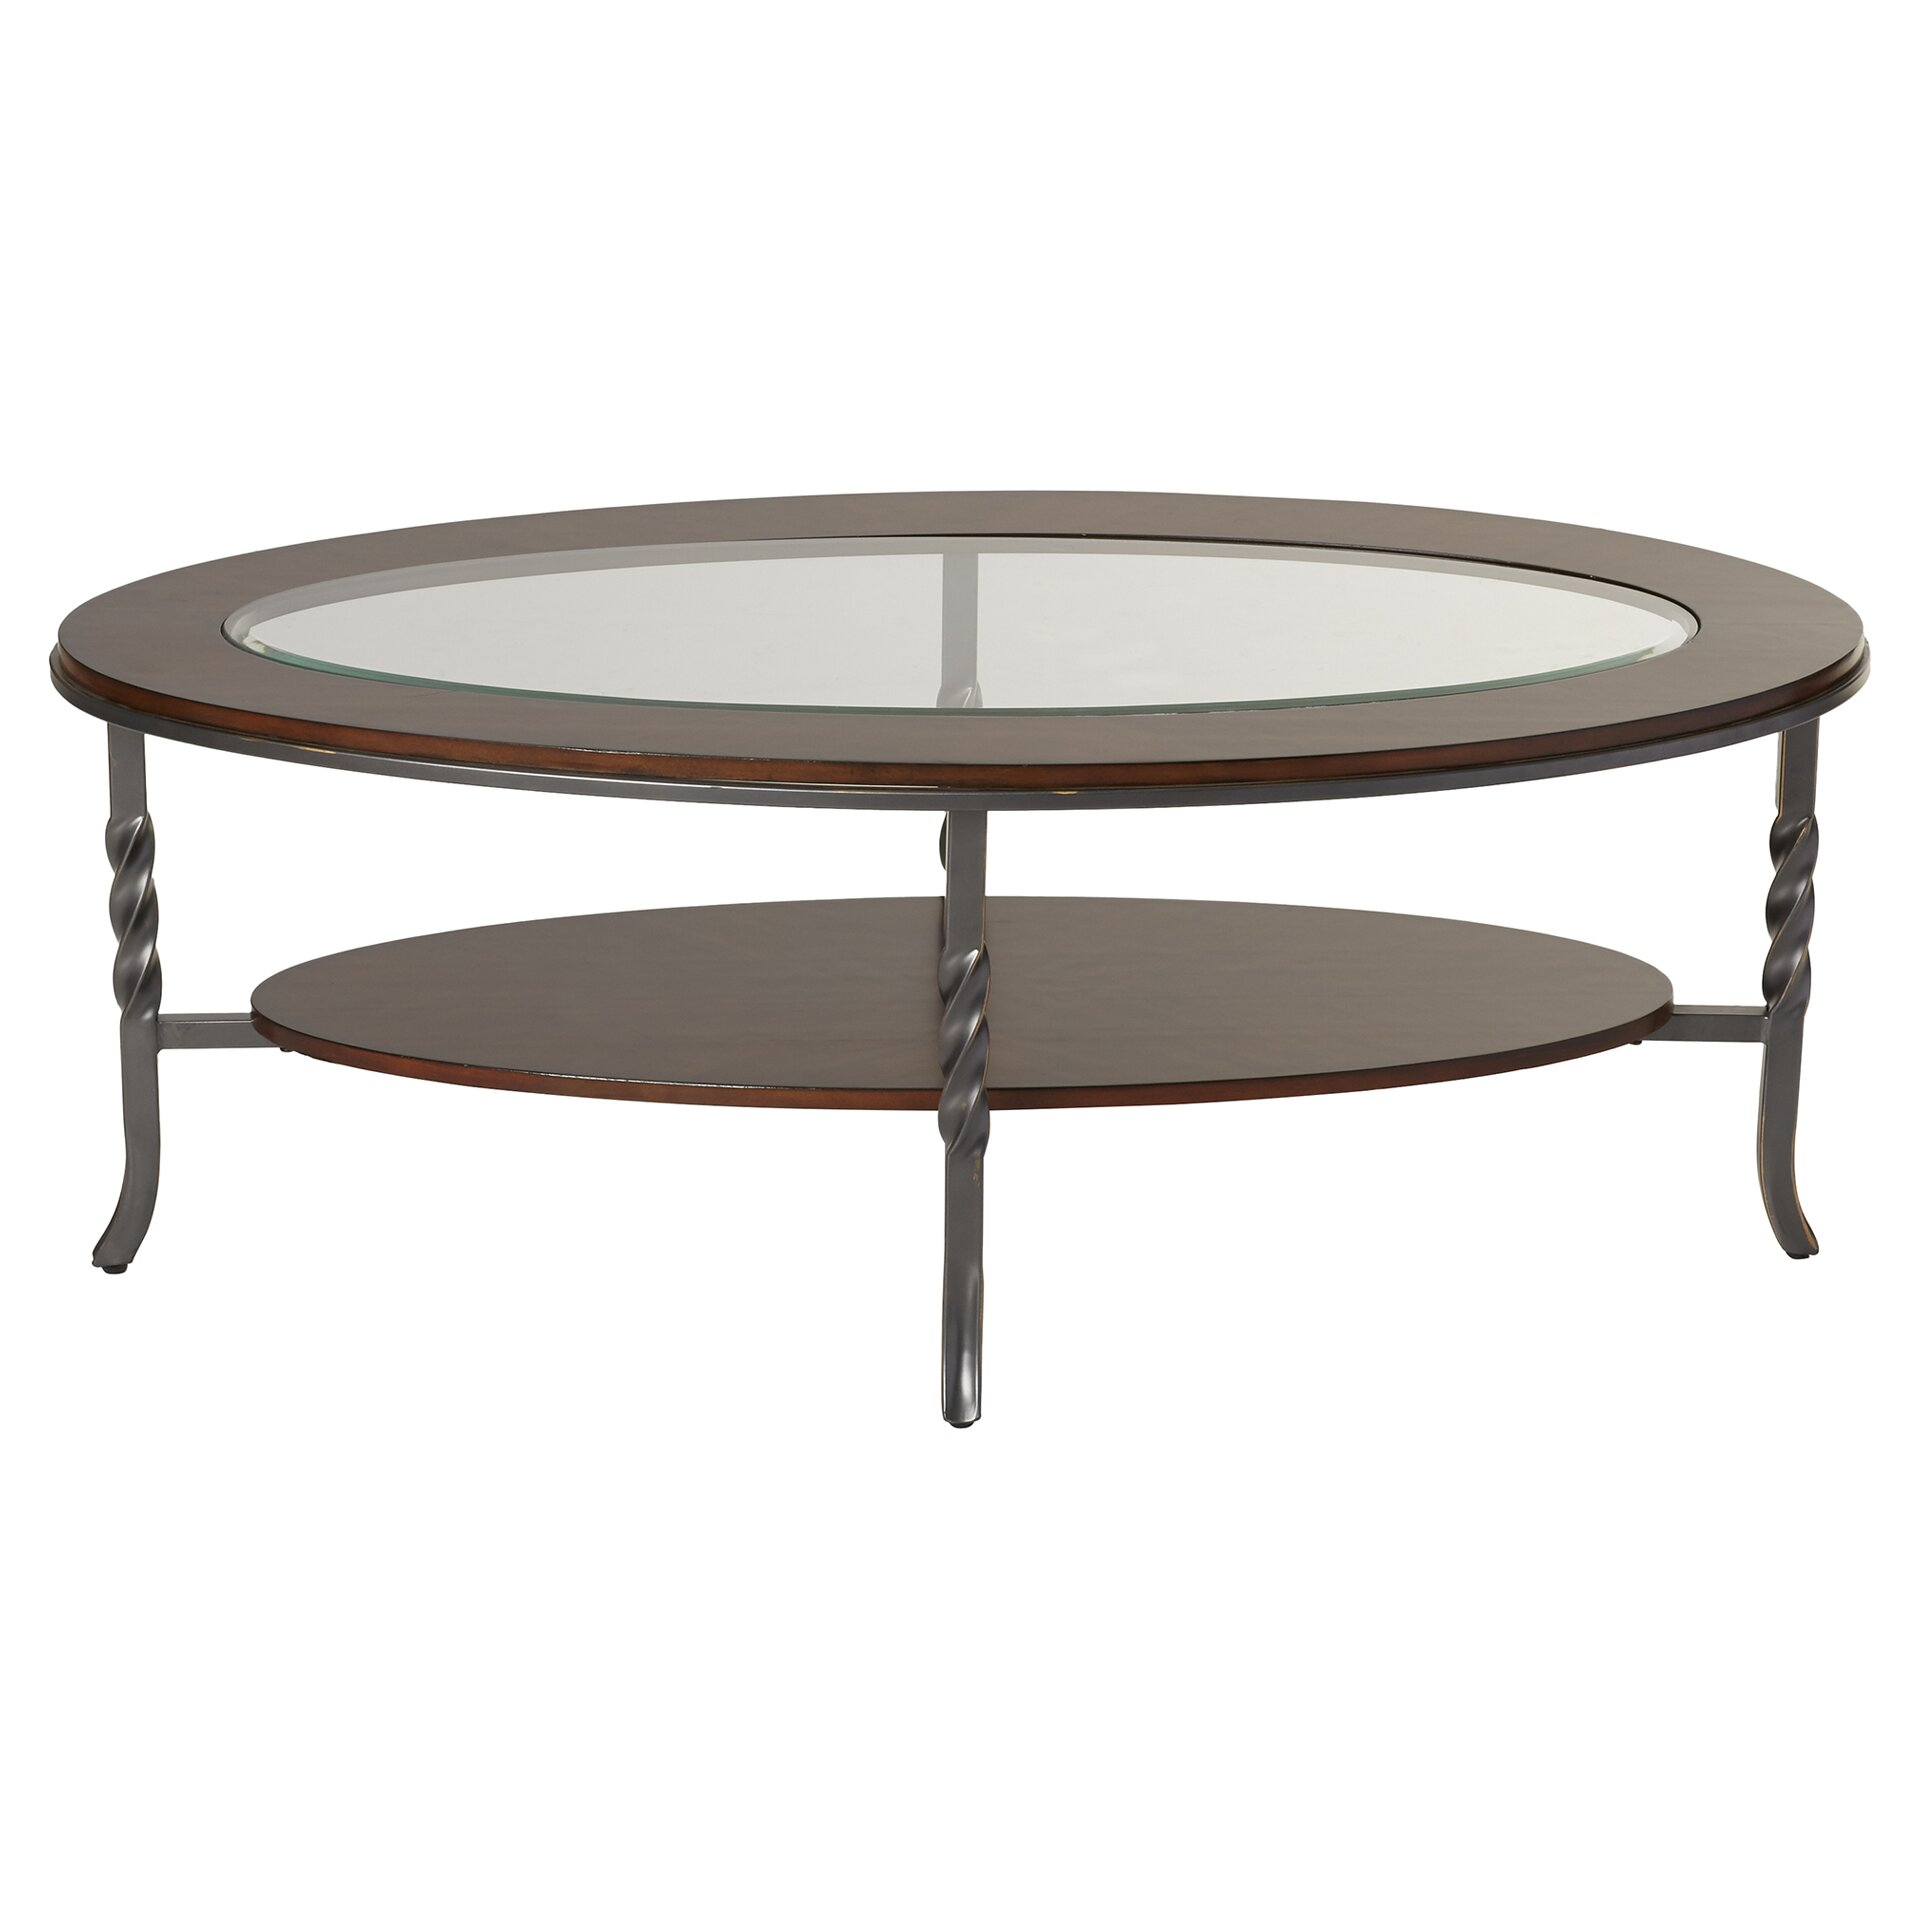 Veropeso 3 Piece Coffee Table Set: Vance 3 Piece Coffee Table Set